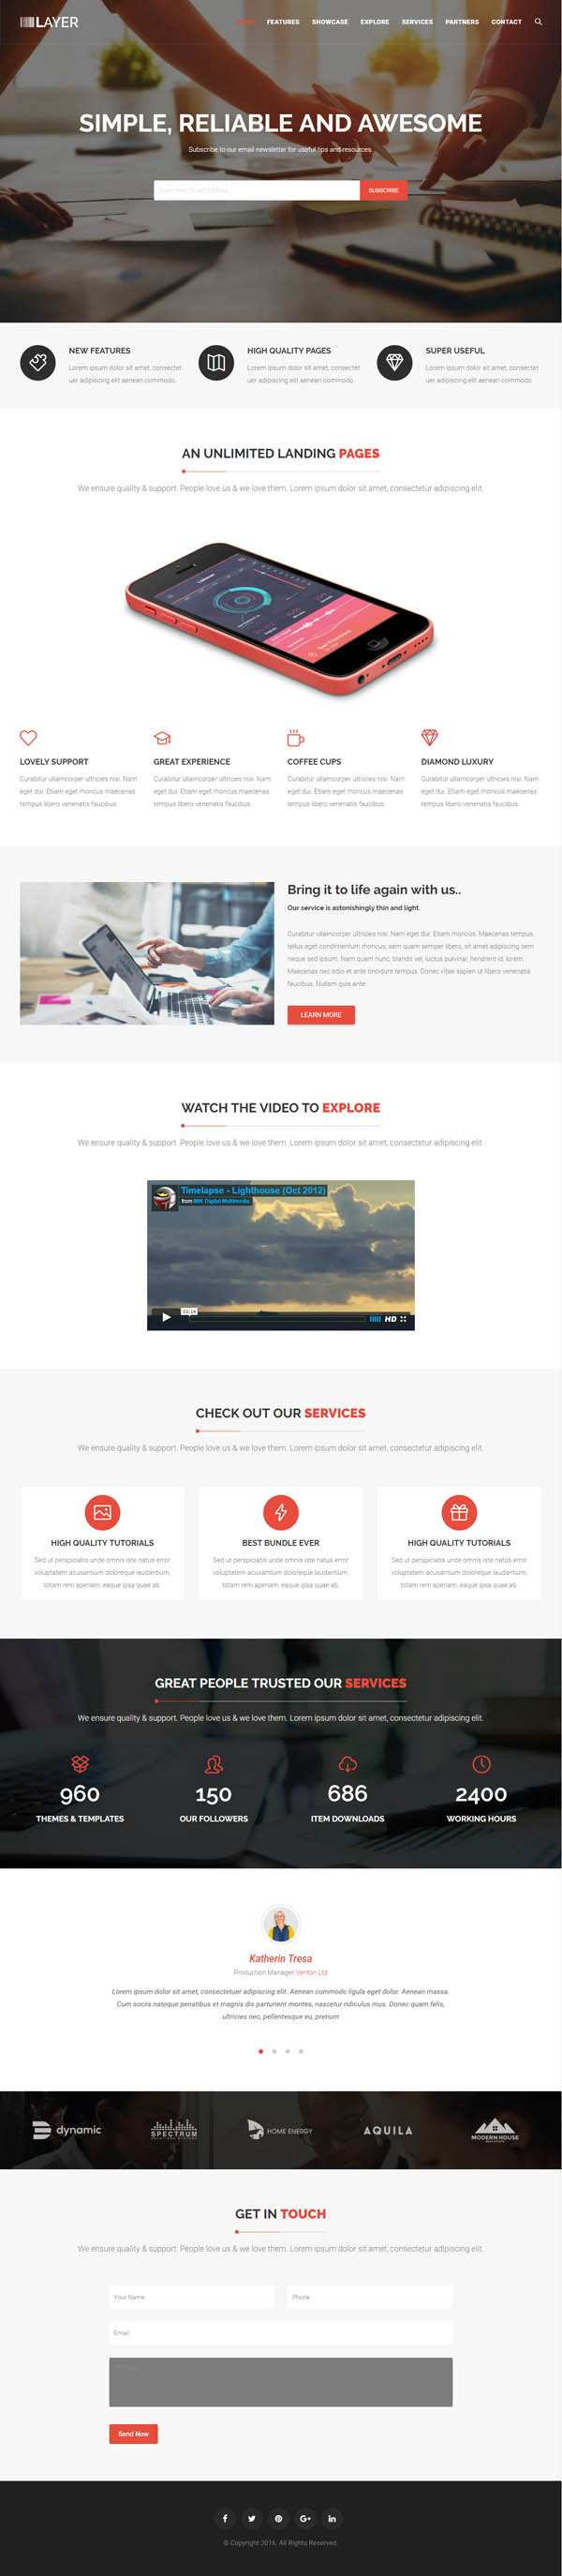 layer simple one page wordpress themes wordpress themes design blog. Black Bedroom Furniture Sets. Home Design Ideas